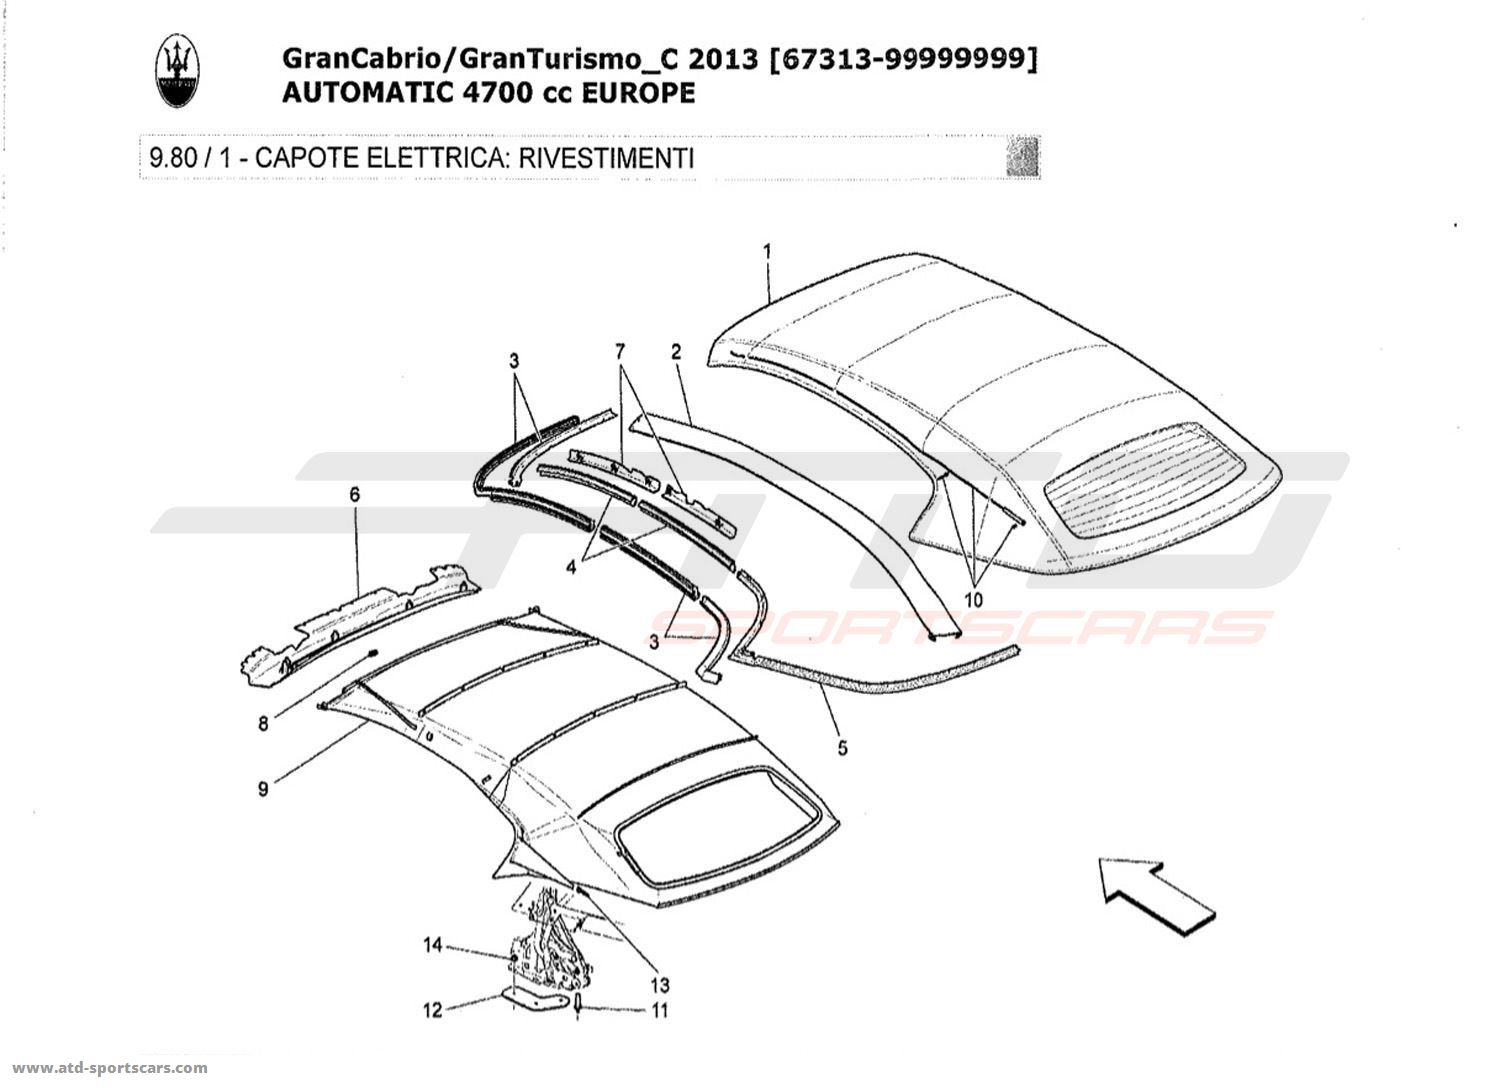 Jeep Wrangler Ball Joint Diagram also 93 Lincoln Front Suspension Diagram additionally Freelander 2 5 V6 Engine moreover Impreza Suspension Diagram in addition 2000 Toyota Tundra Front Axle Diagram. on anyone have chassis diagrams 53608